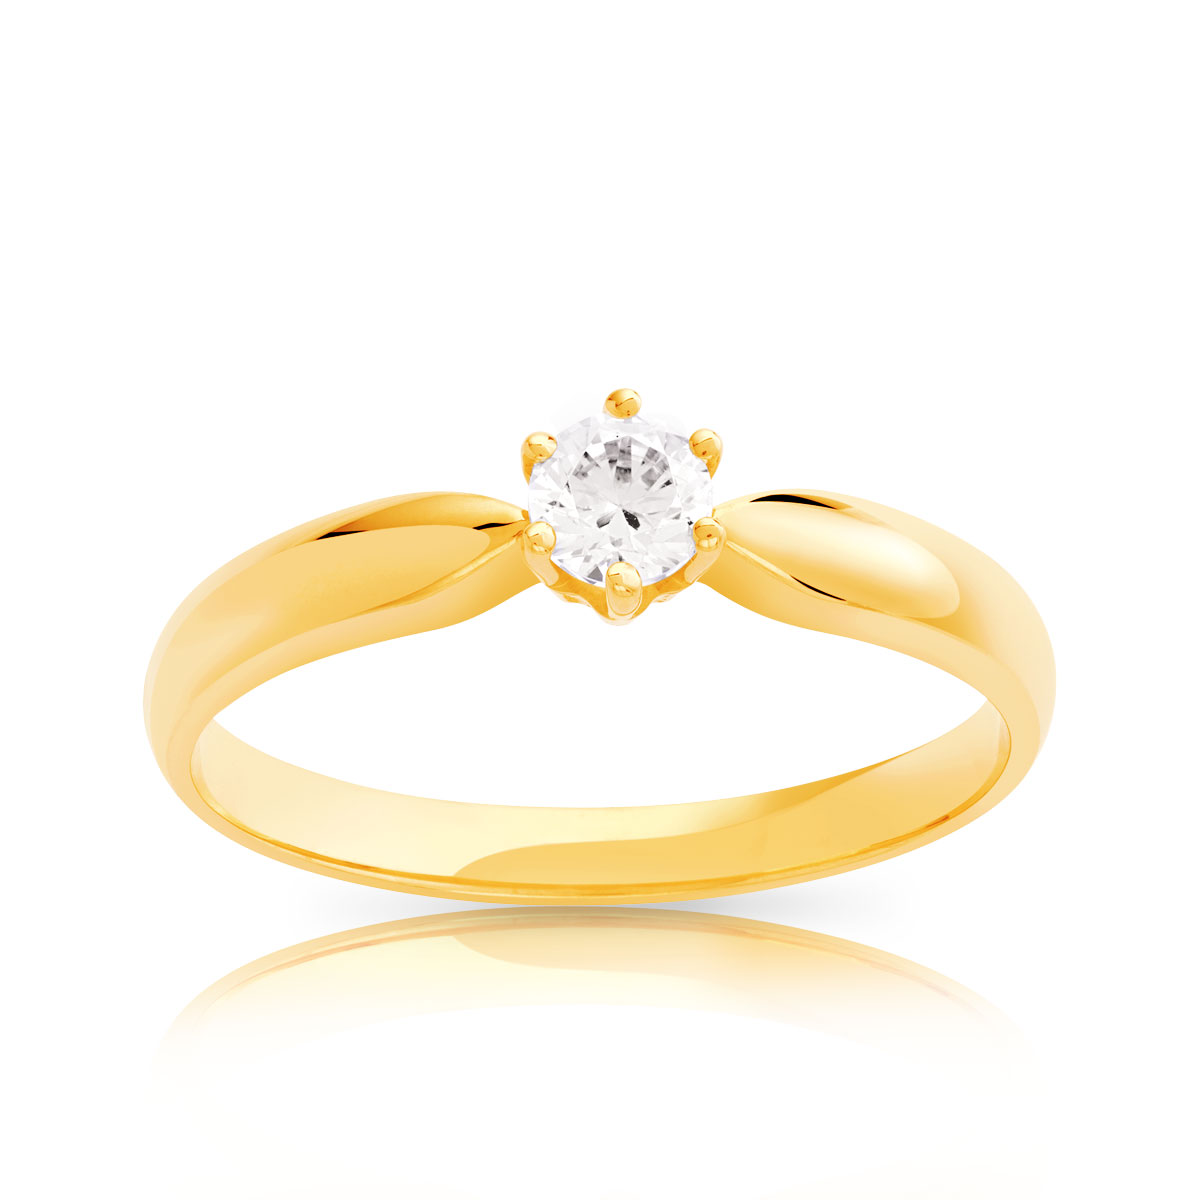 Bague solitaire or 750 dia synth 20/100e de carat - vue V1